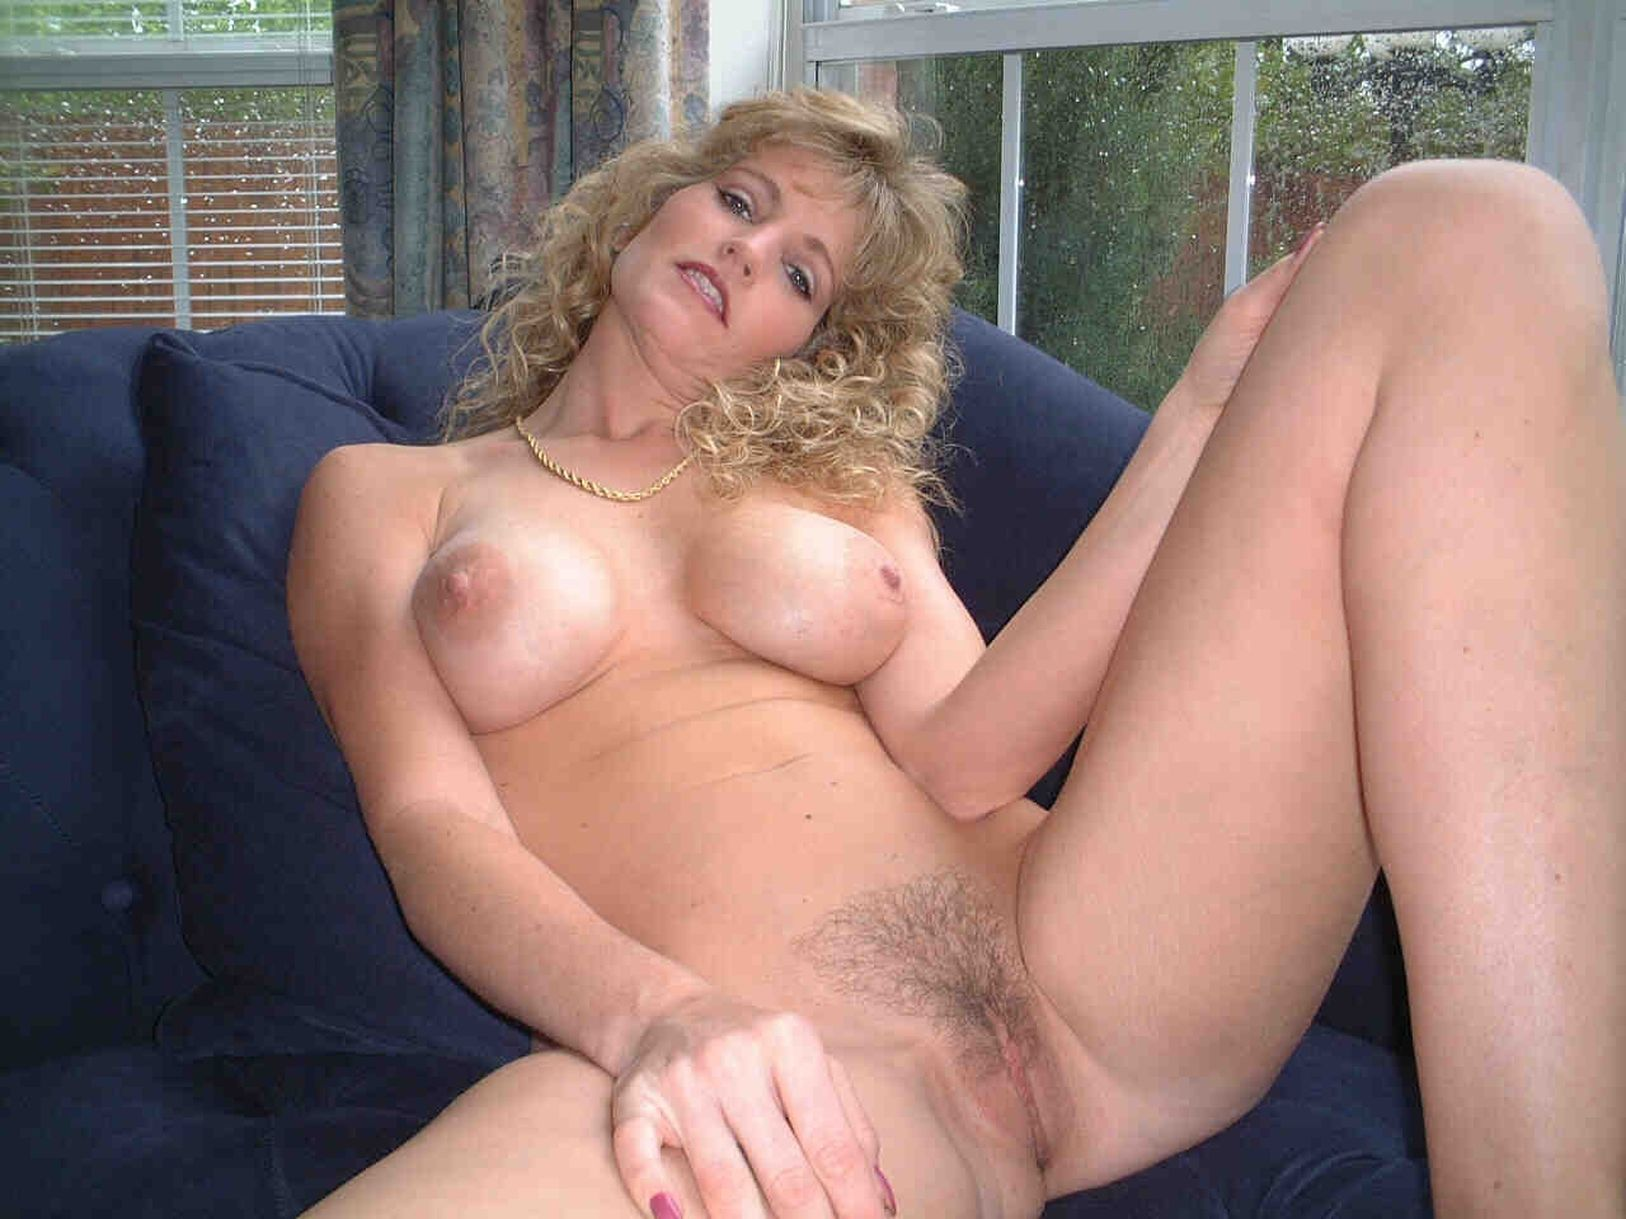 Milf chat for free, white wife video free interracial sex